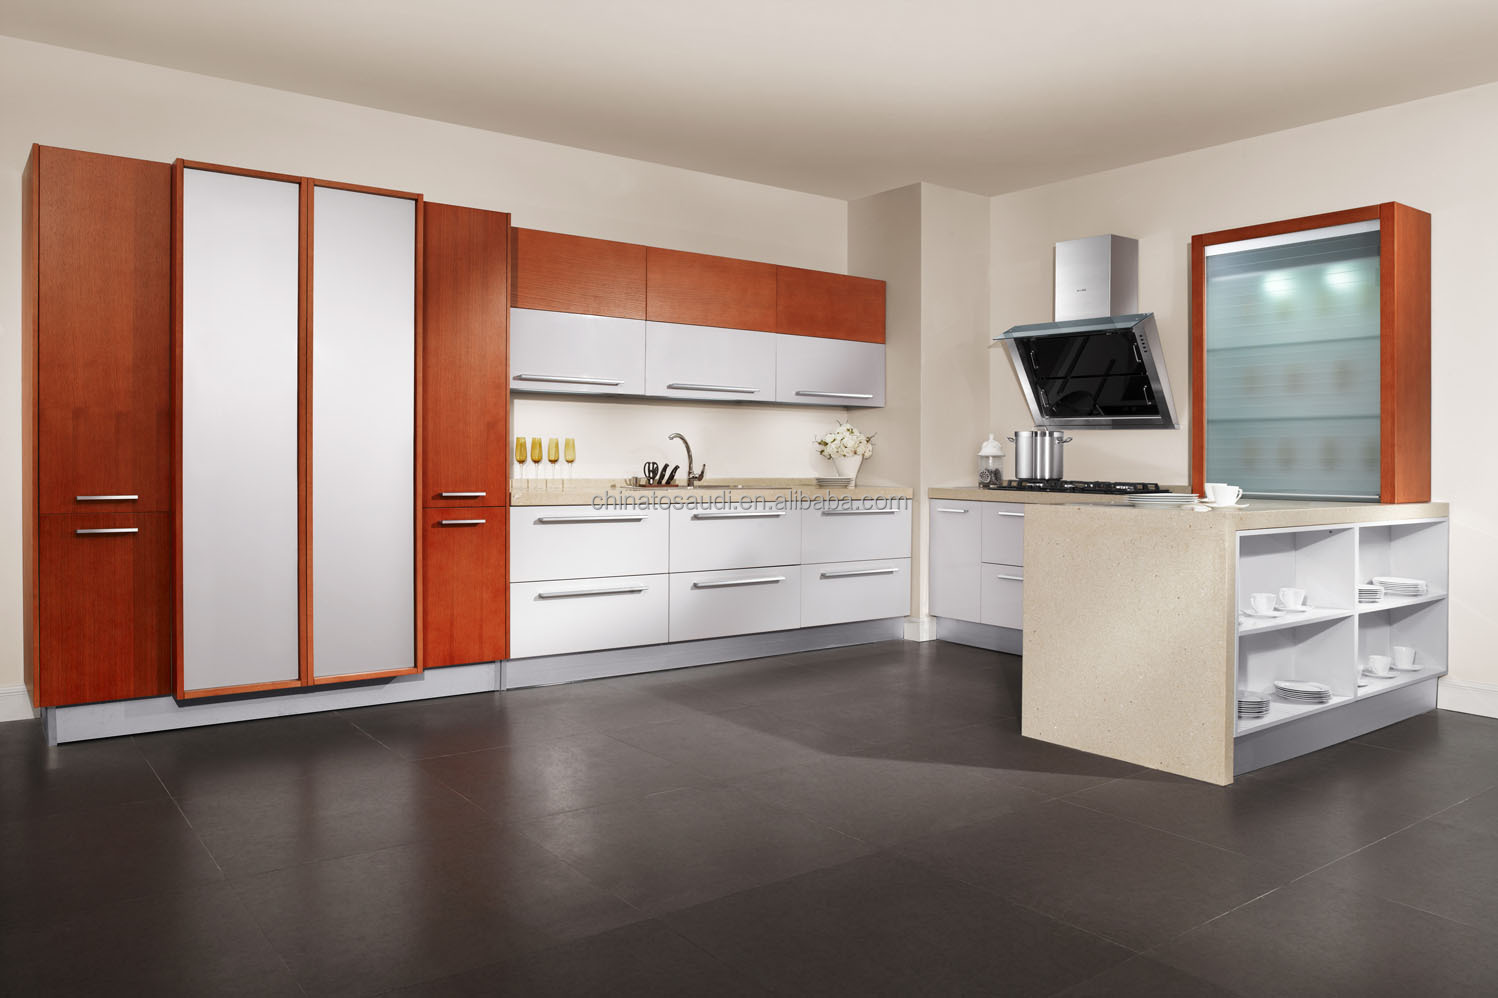 Modern modular kitchens designs price kichen cabinets with for Veneer for kitchen cabinets